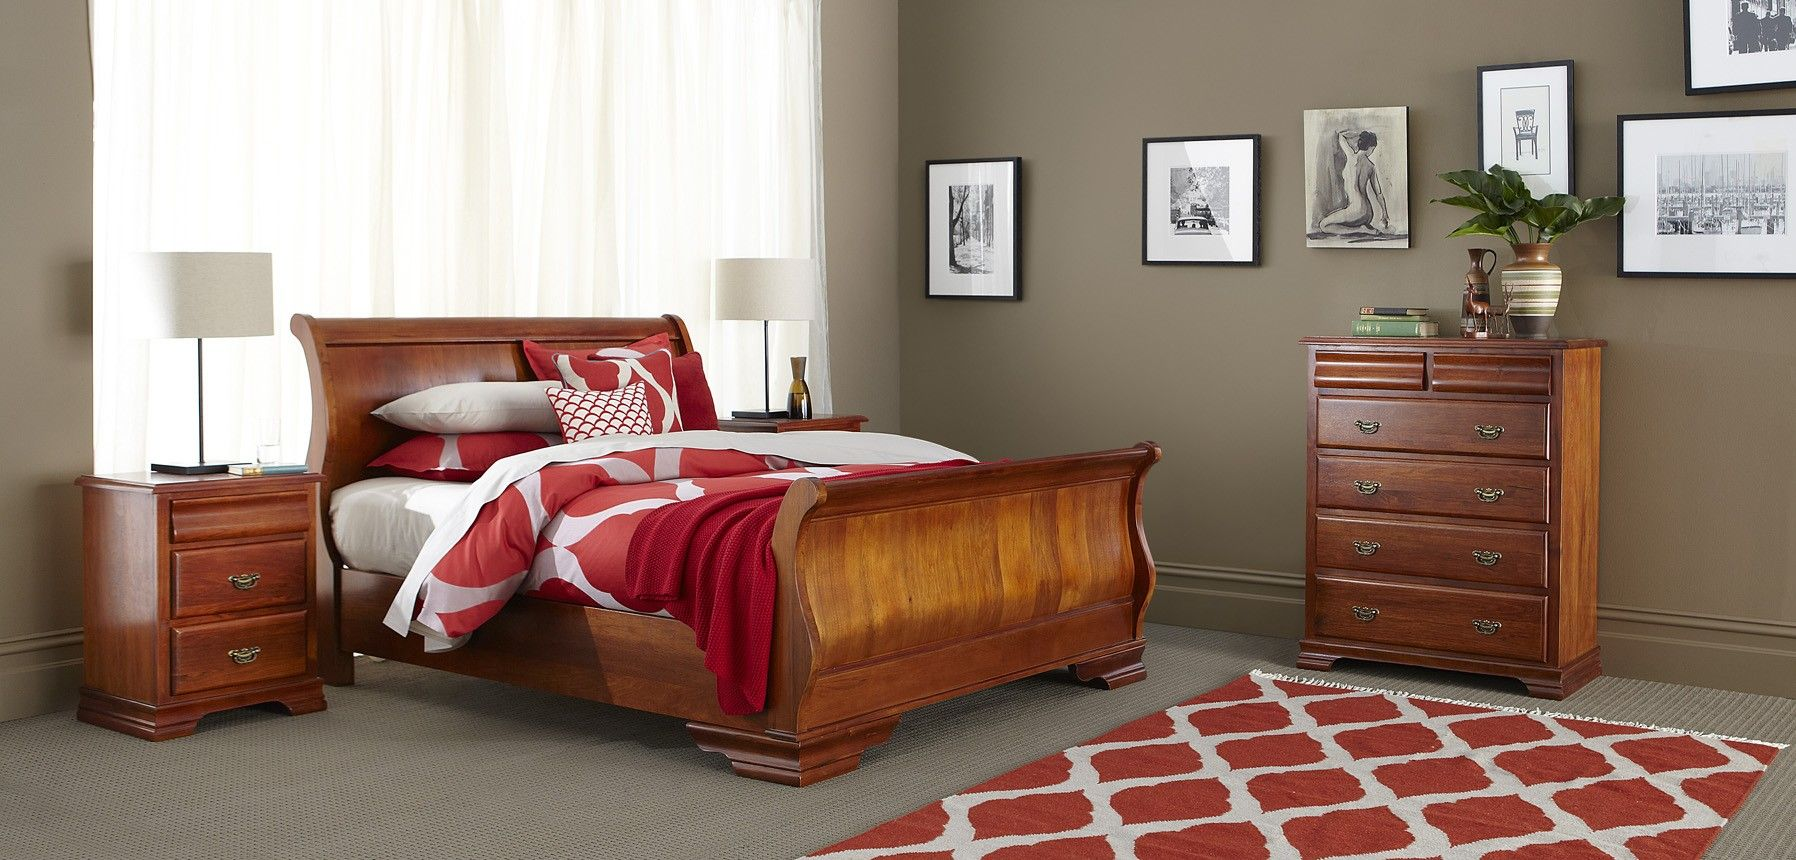 Forty Winks Elizabeth Clic Warm Wood Grained Bedroom Furniture Suite With White Linens And Décor